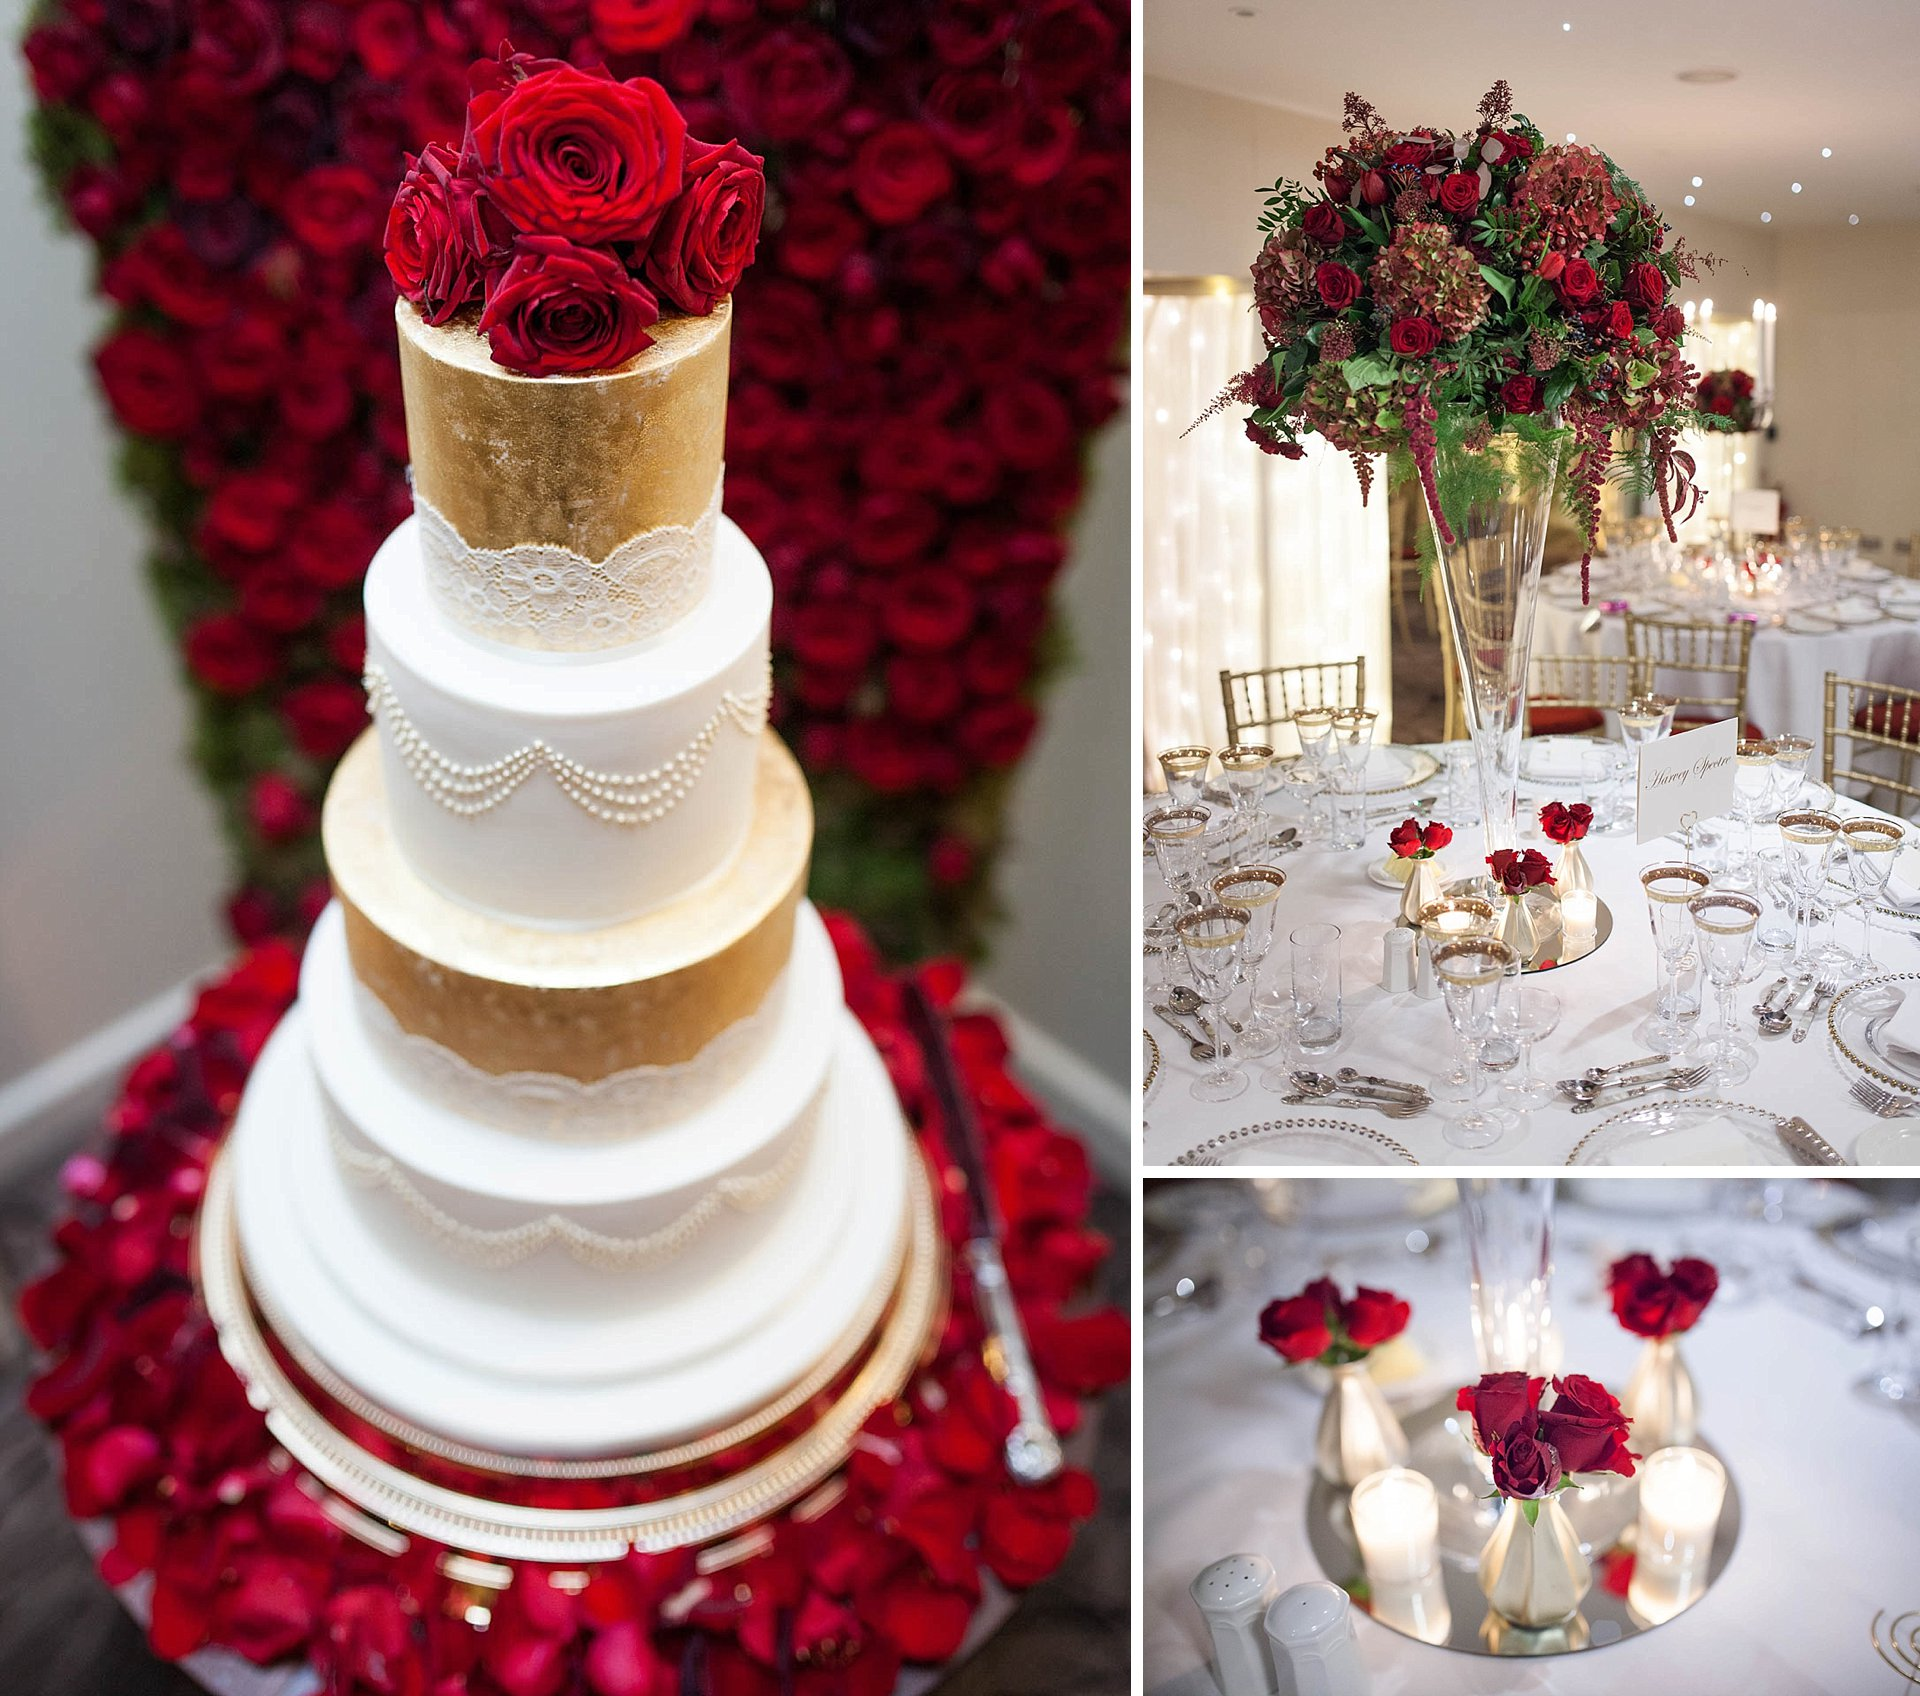 Wedding cake and red roses